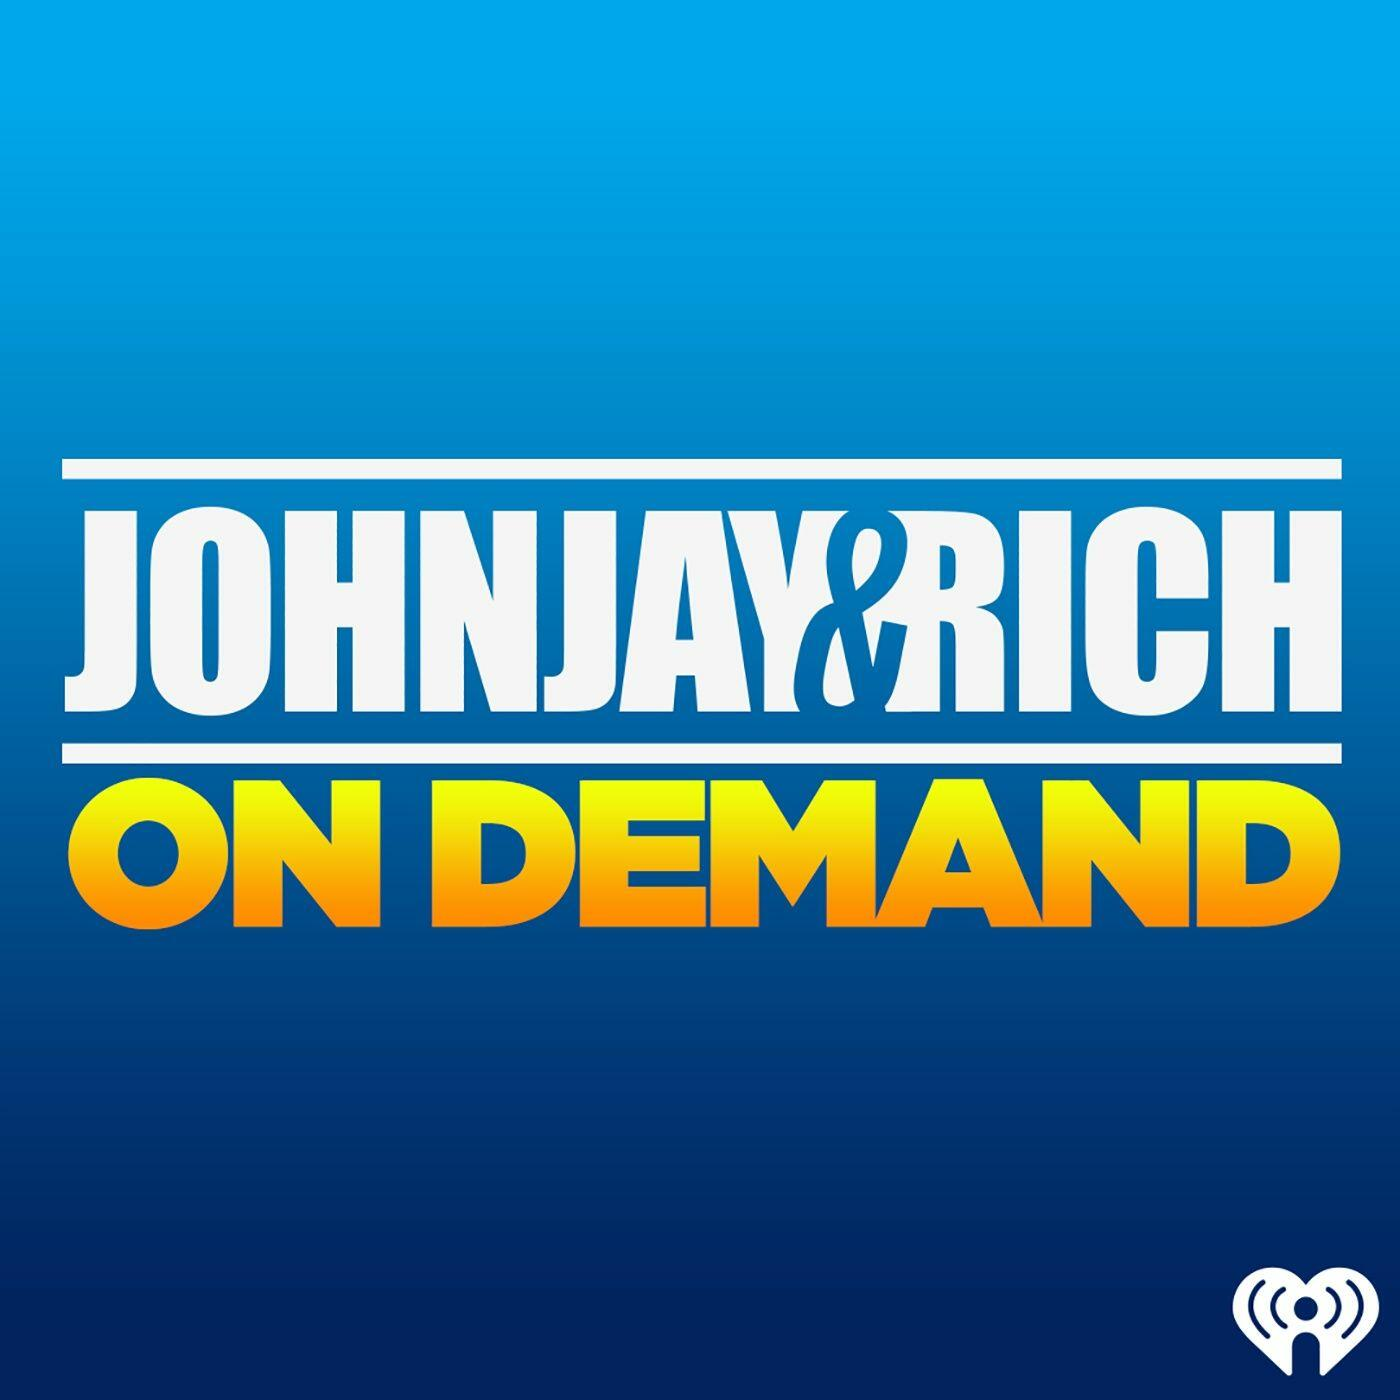 Listen Free to JohnJay & Rich On Demand on iHeartRadio Podcasts